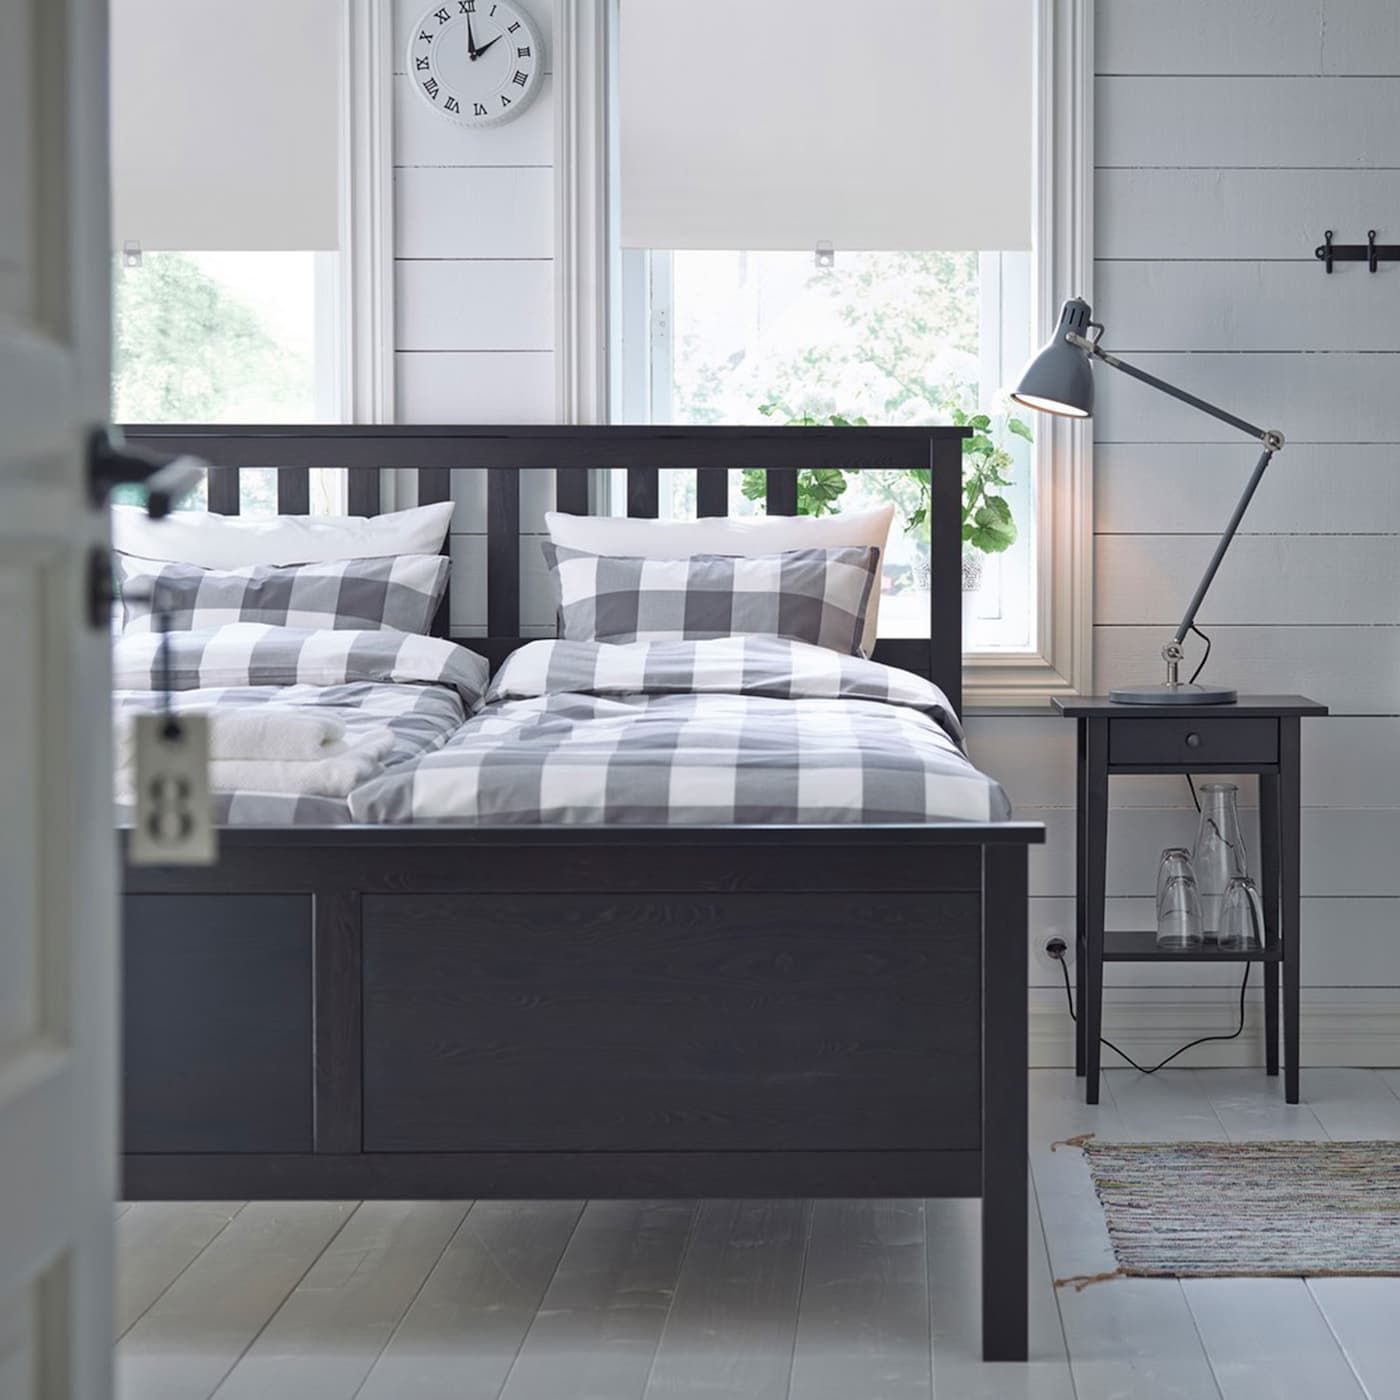 IKEA HEMNES black brown bedframe furnished with light grey and white checkered bedsheets in a small bedroom.